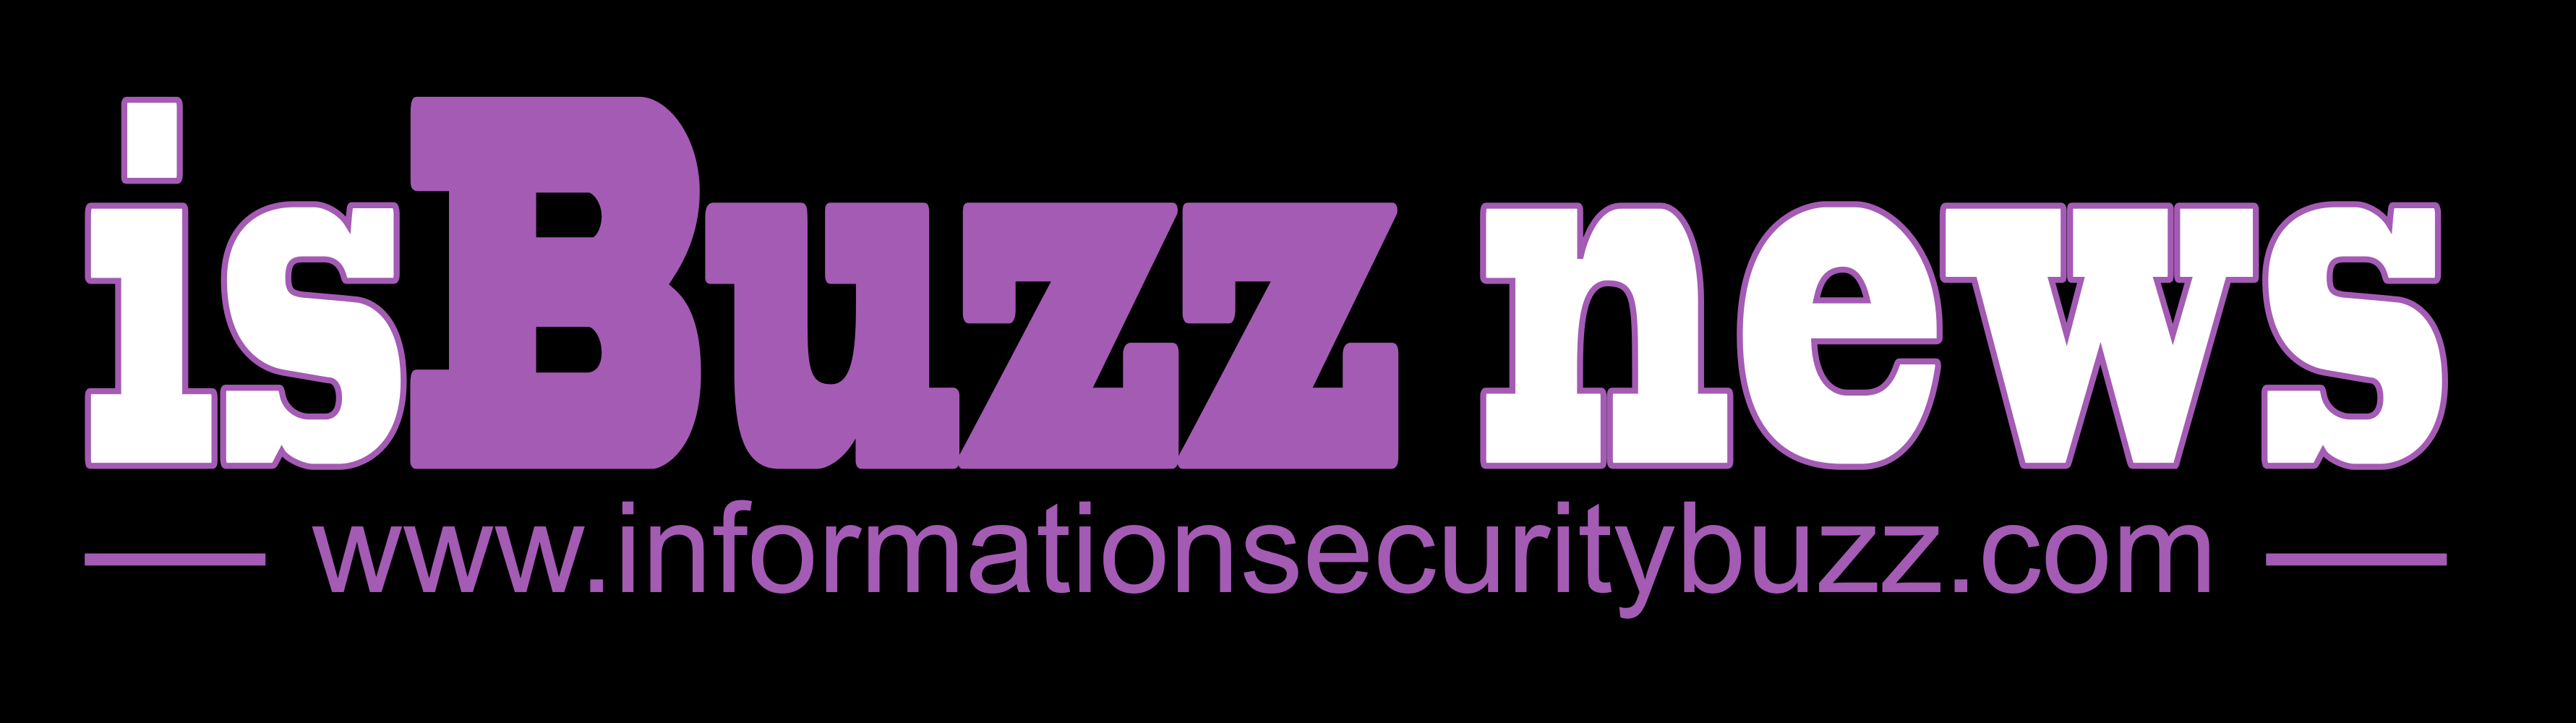 buzz news logo